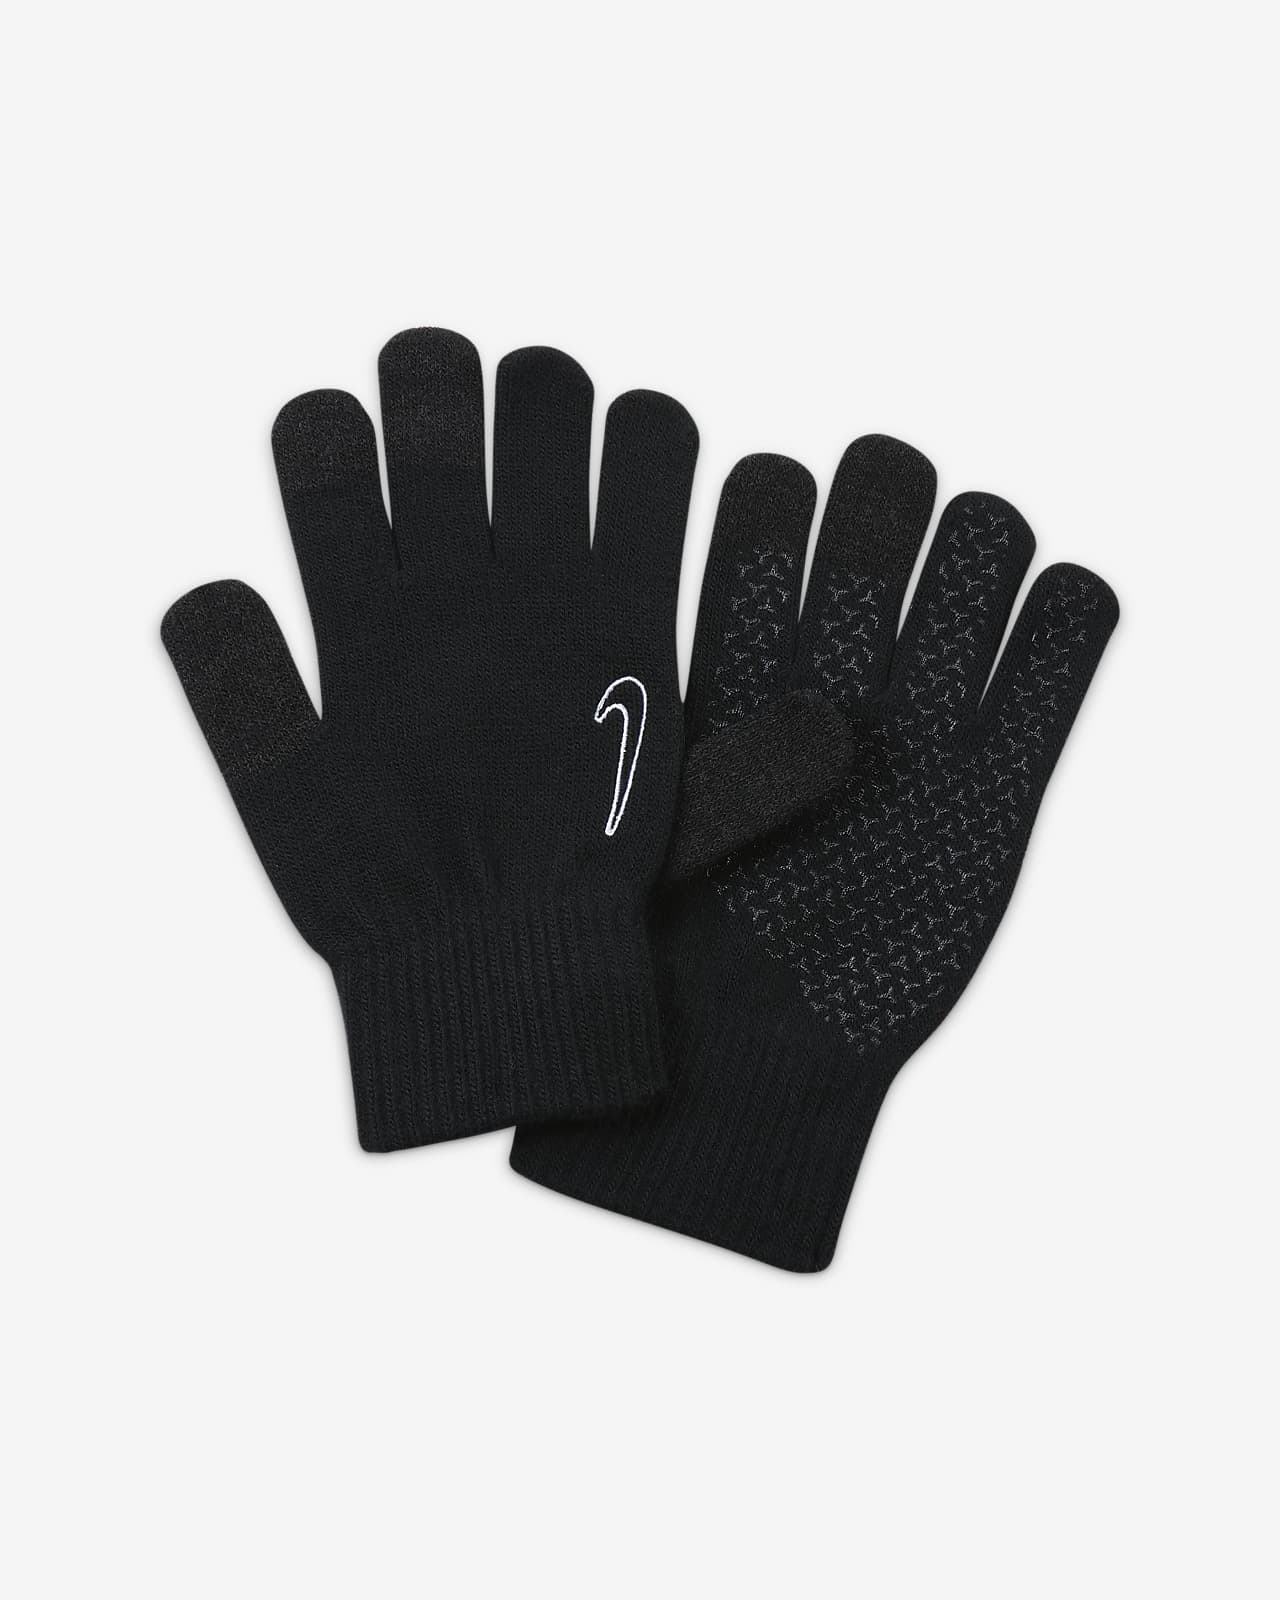 Nike Tech and Grip Kids' Knit Gloves